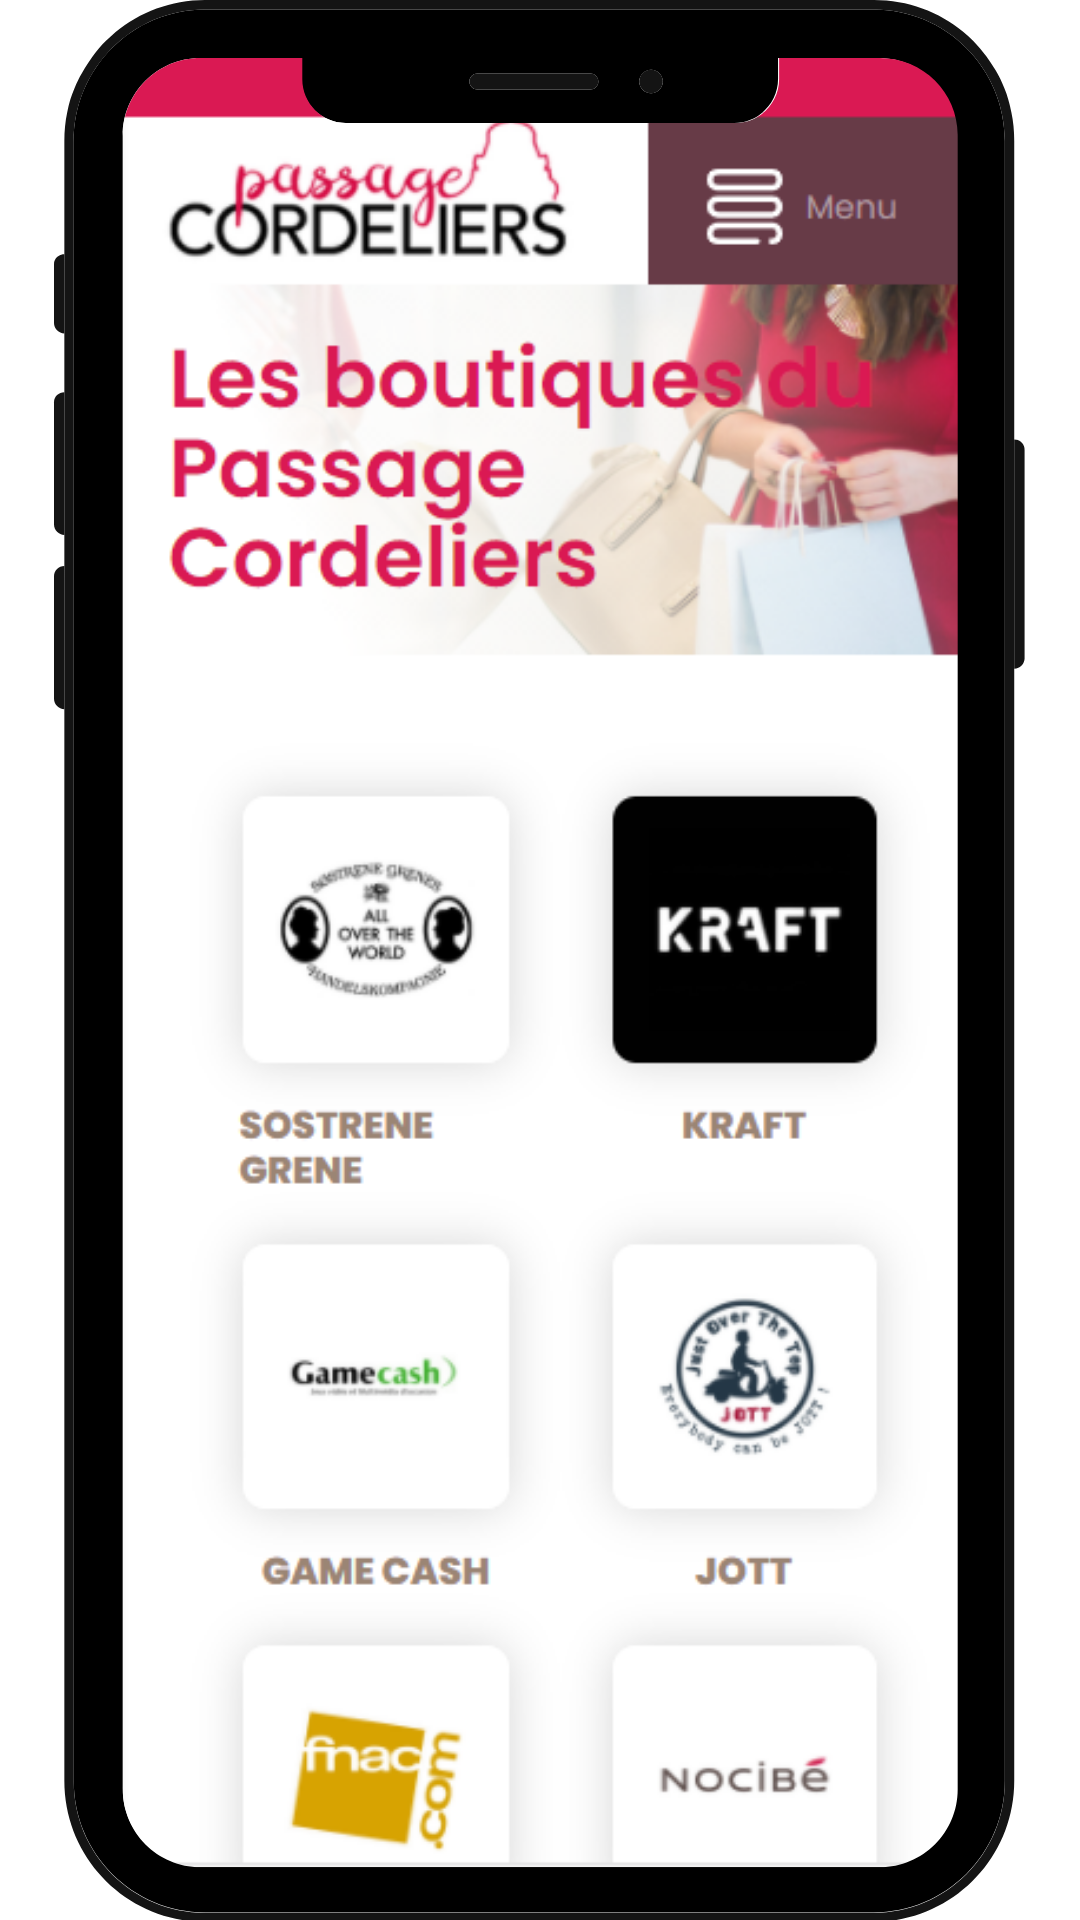 PASSAGE-CORDELIERS-pop-up-2